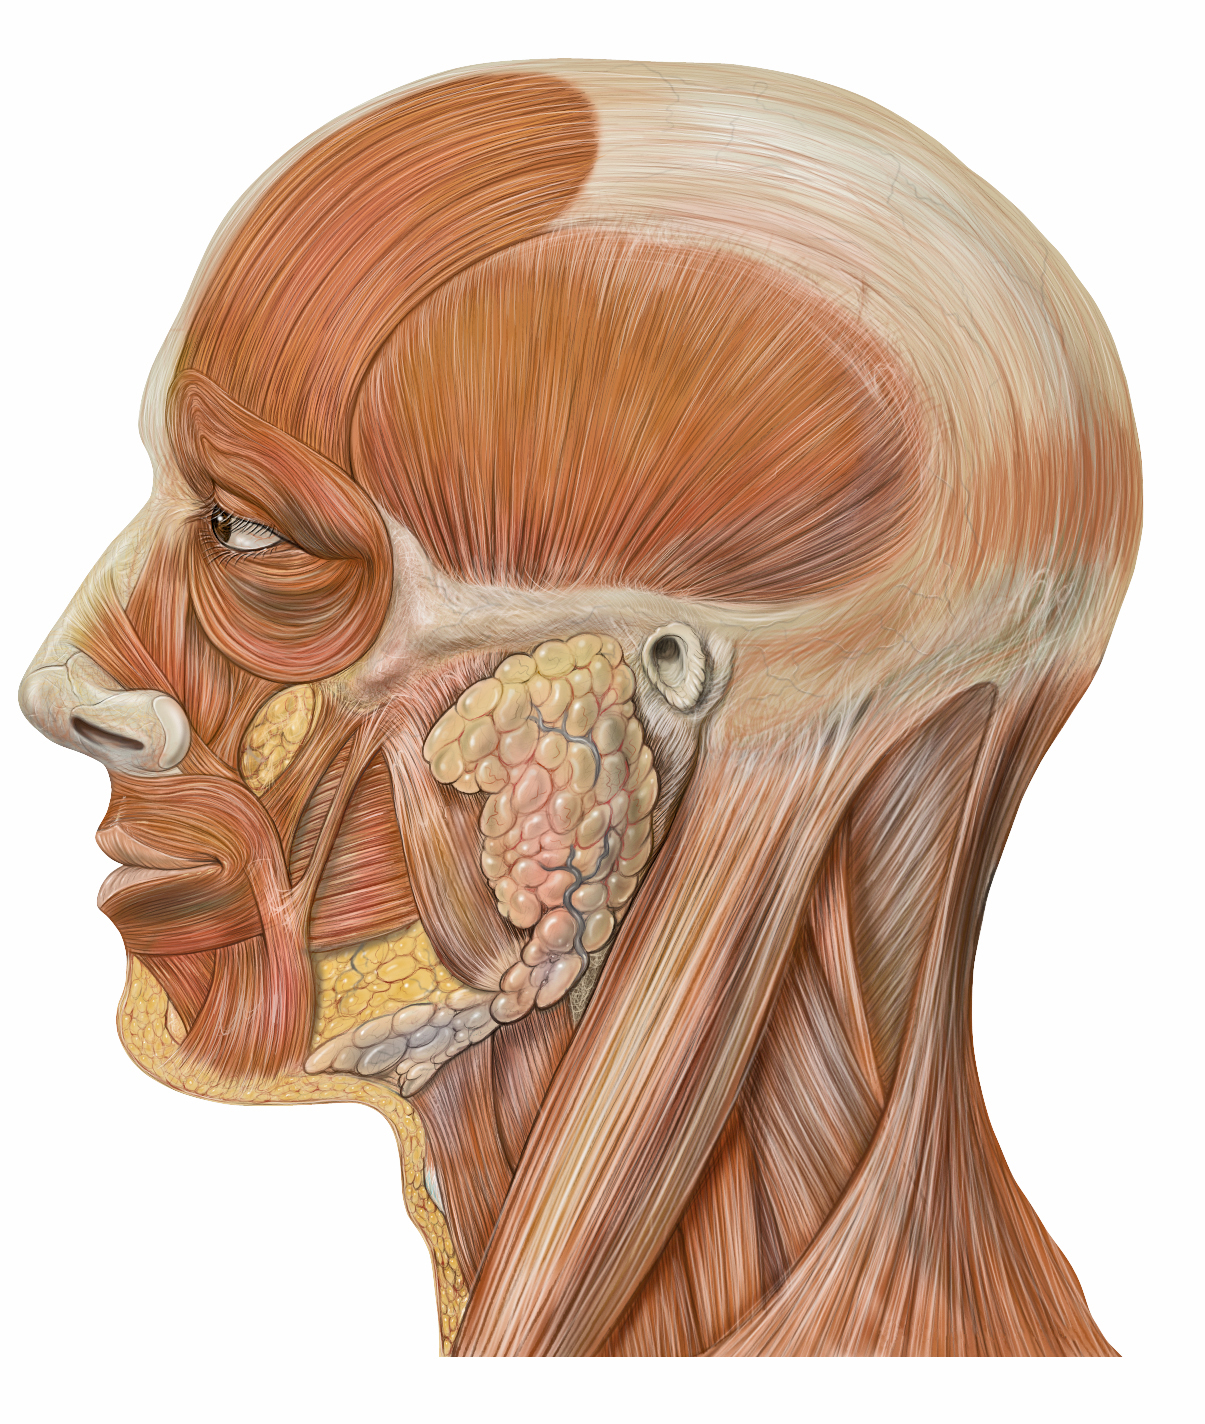 Facial Muscles Quiz By Bef0110